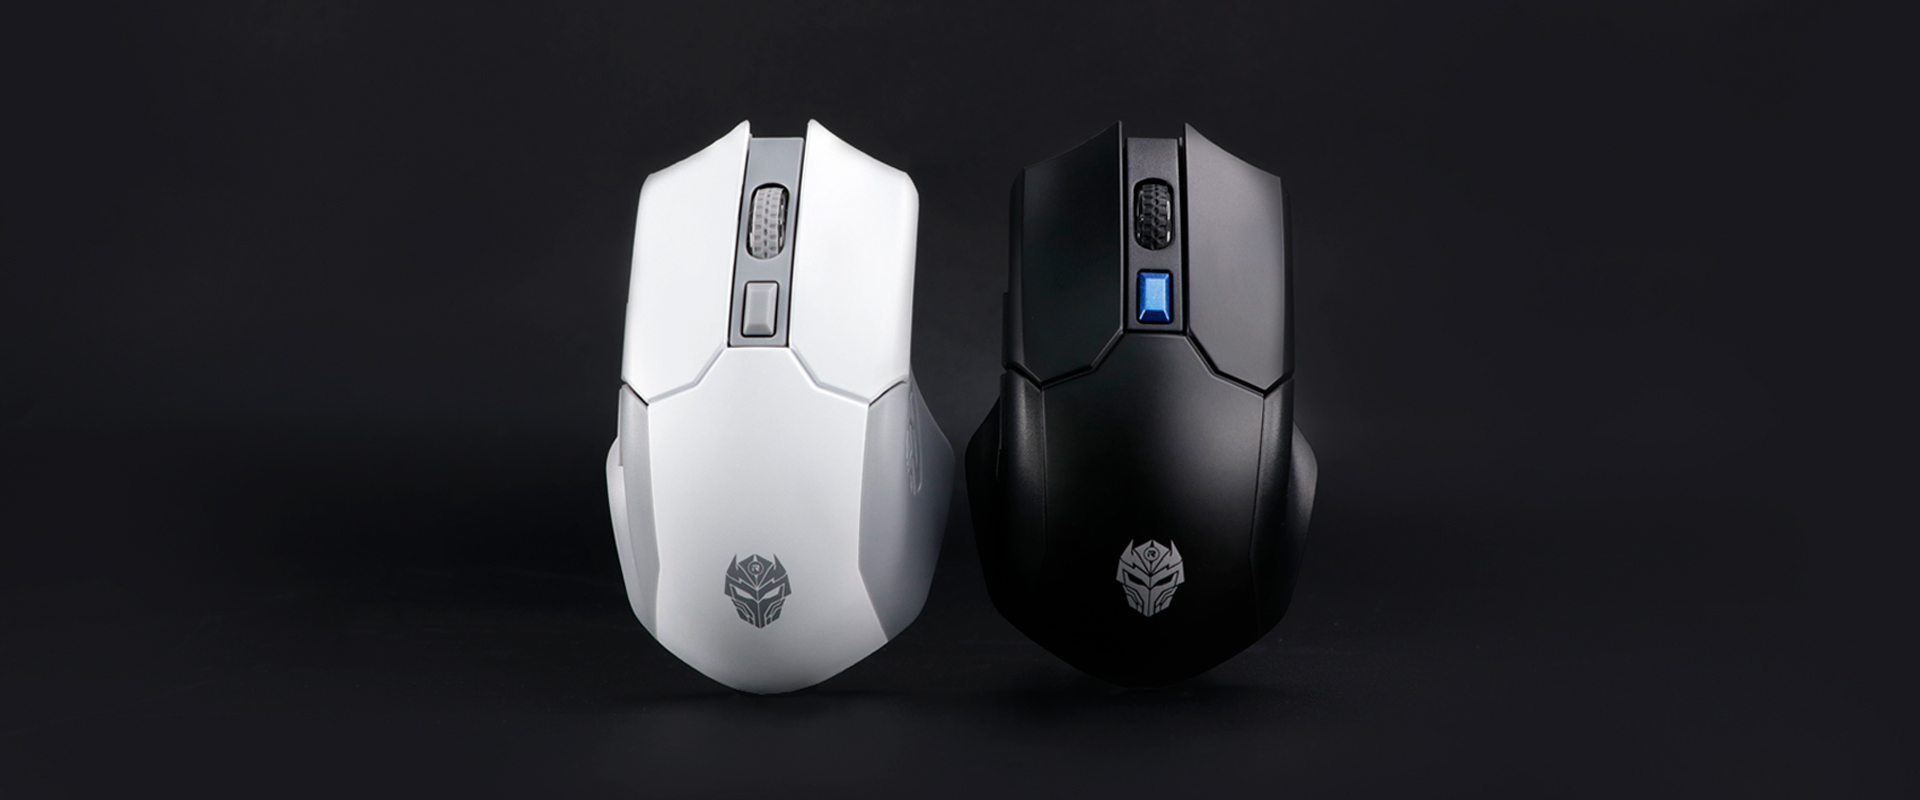 mouse gaming wireless Rexus S5 Aviator WL S5 01